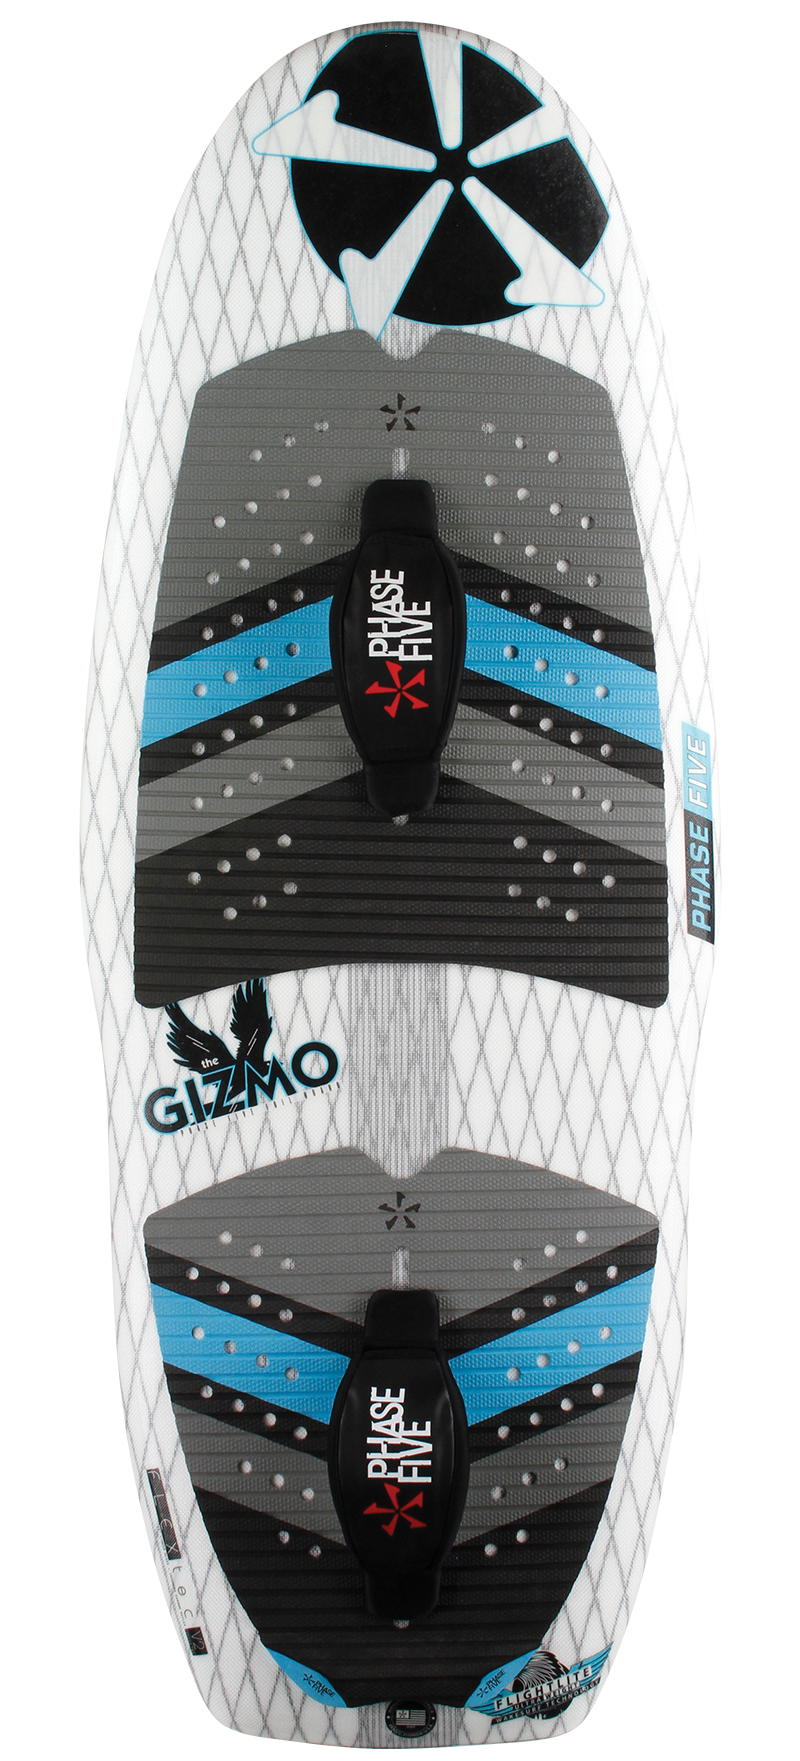 Phase Five Gizmo Wake Foil Package 2020 - 88 Gear